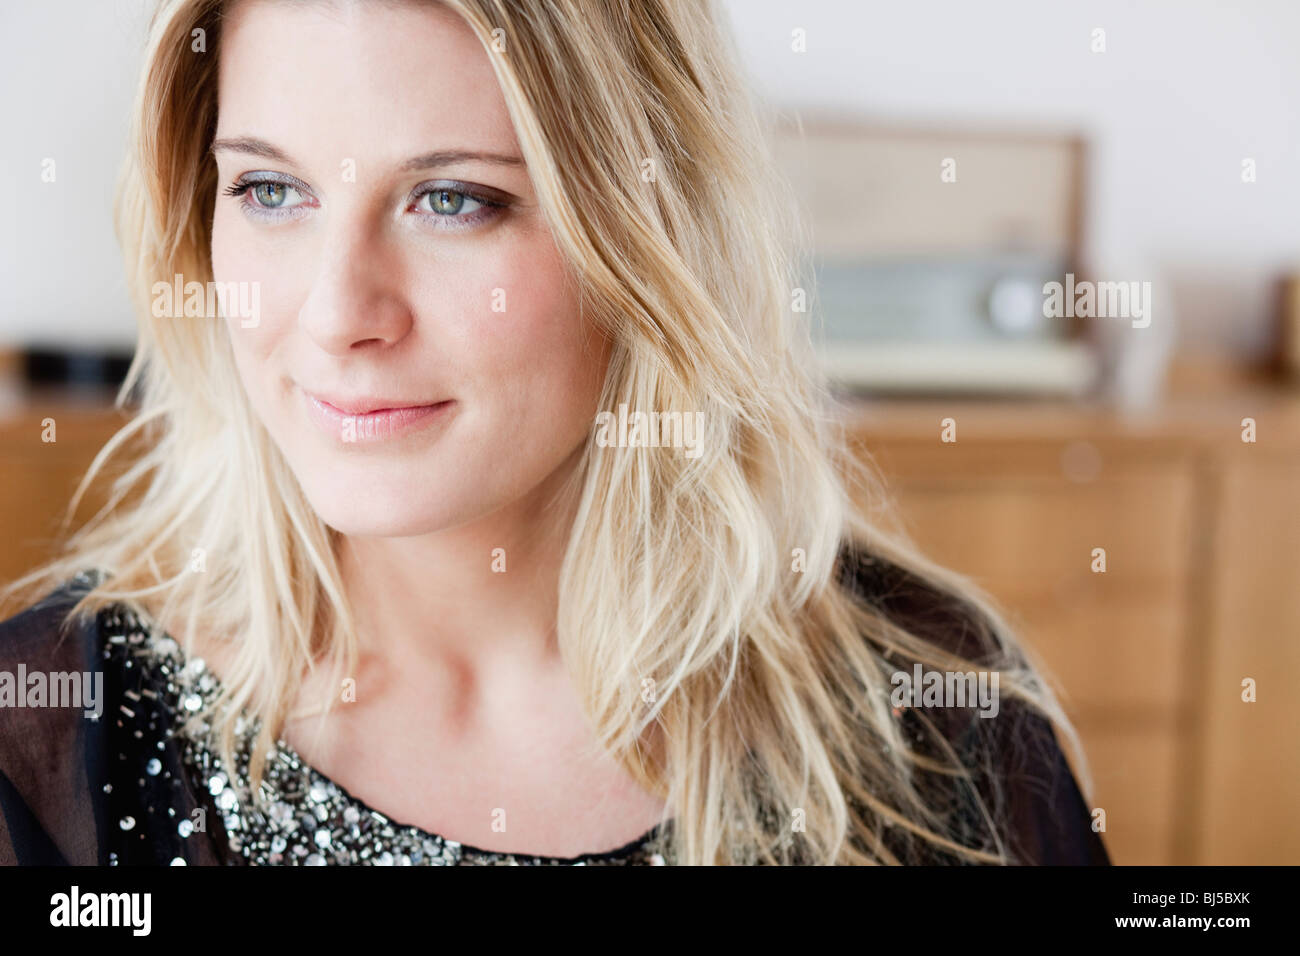 beautiful woman smiling - Stock Image